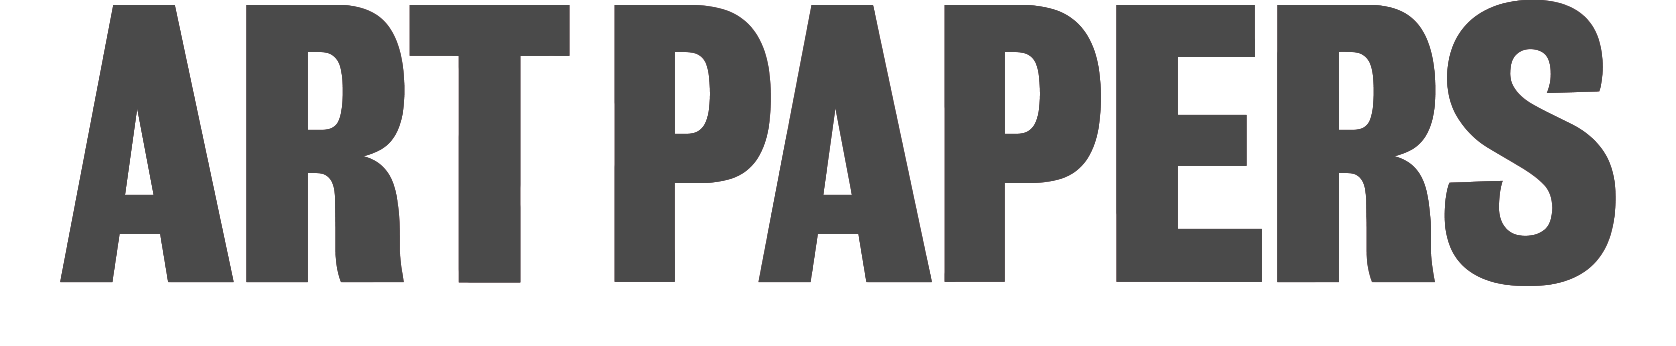 ArtPapers_logo_Gray_1676x346-3.png